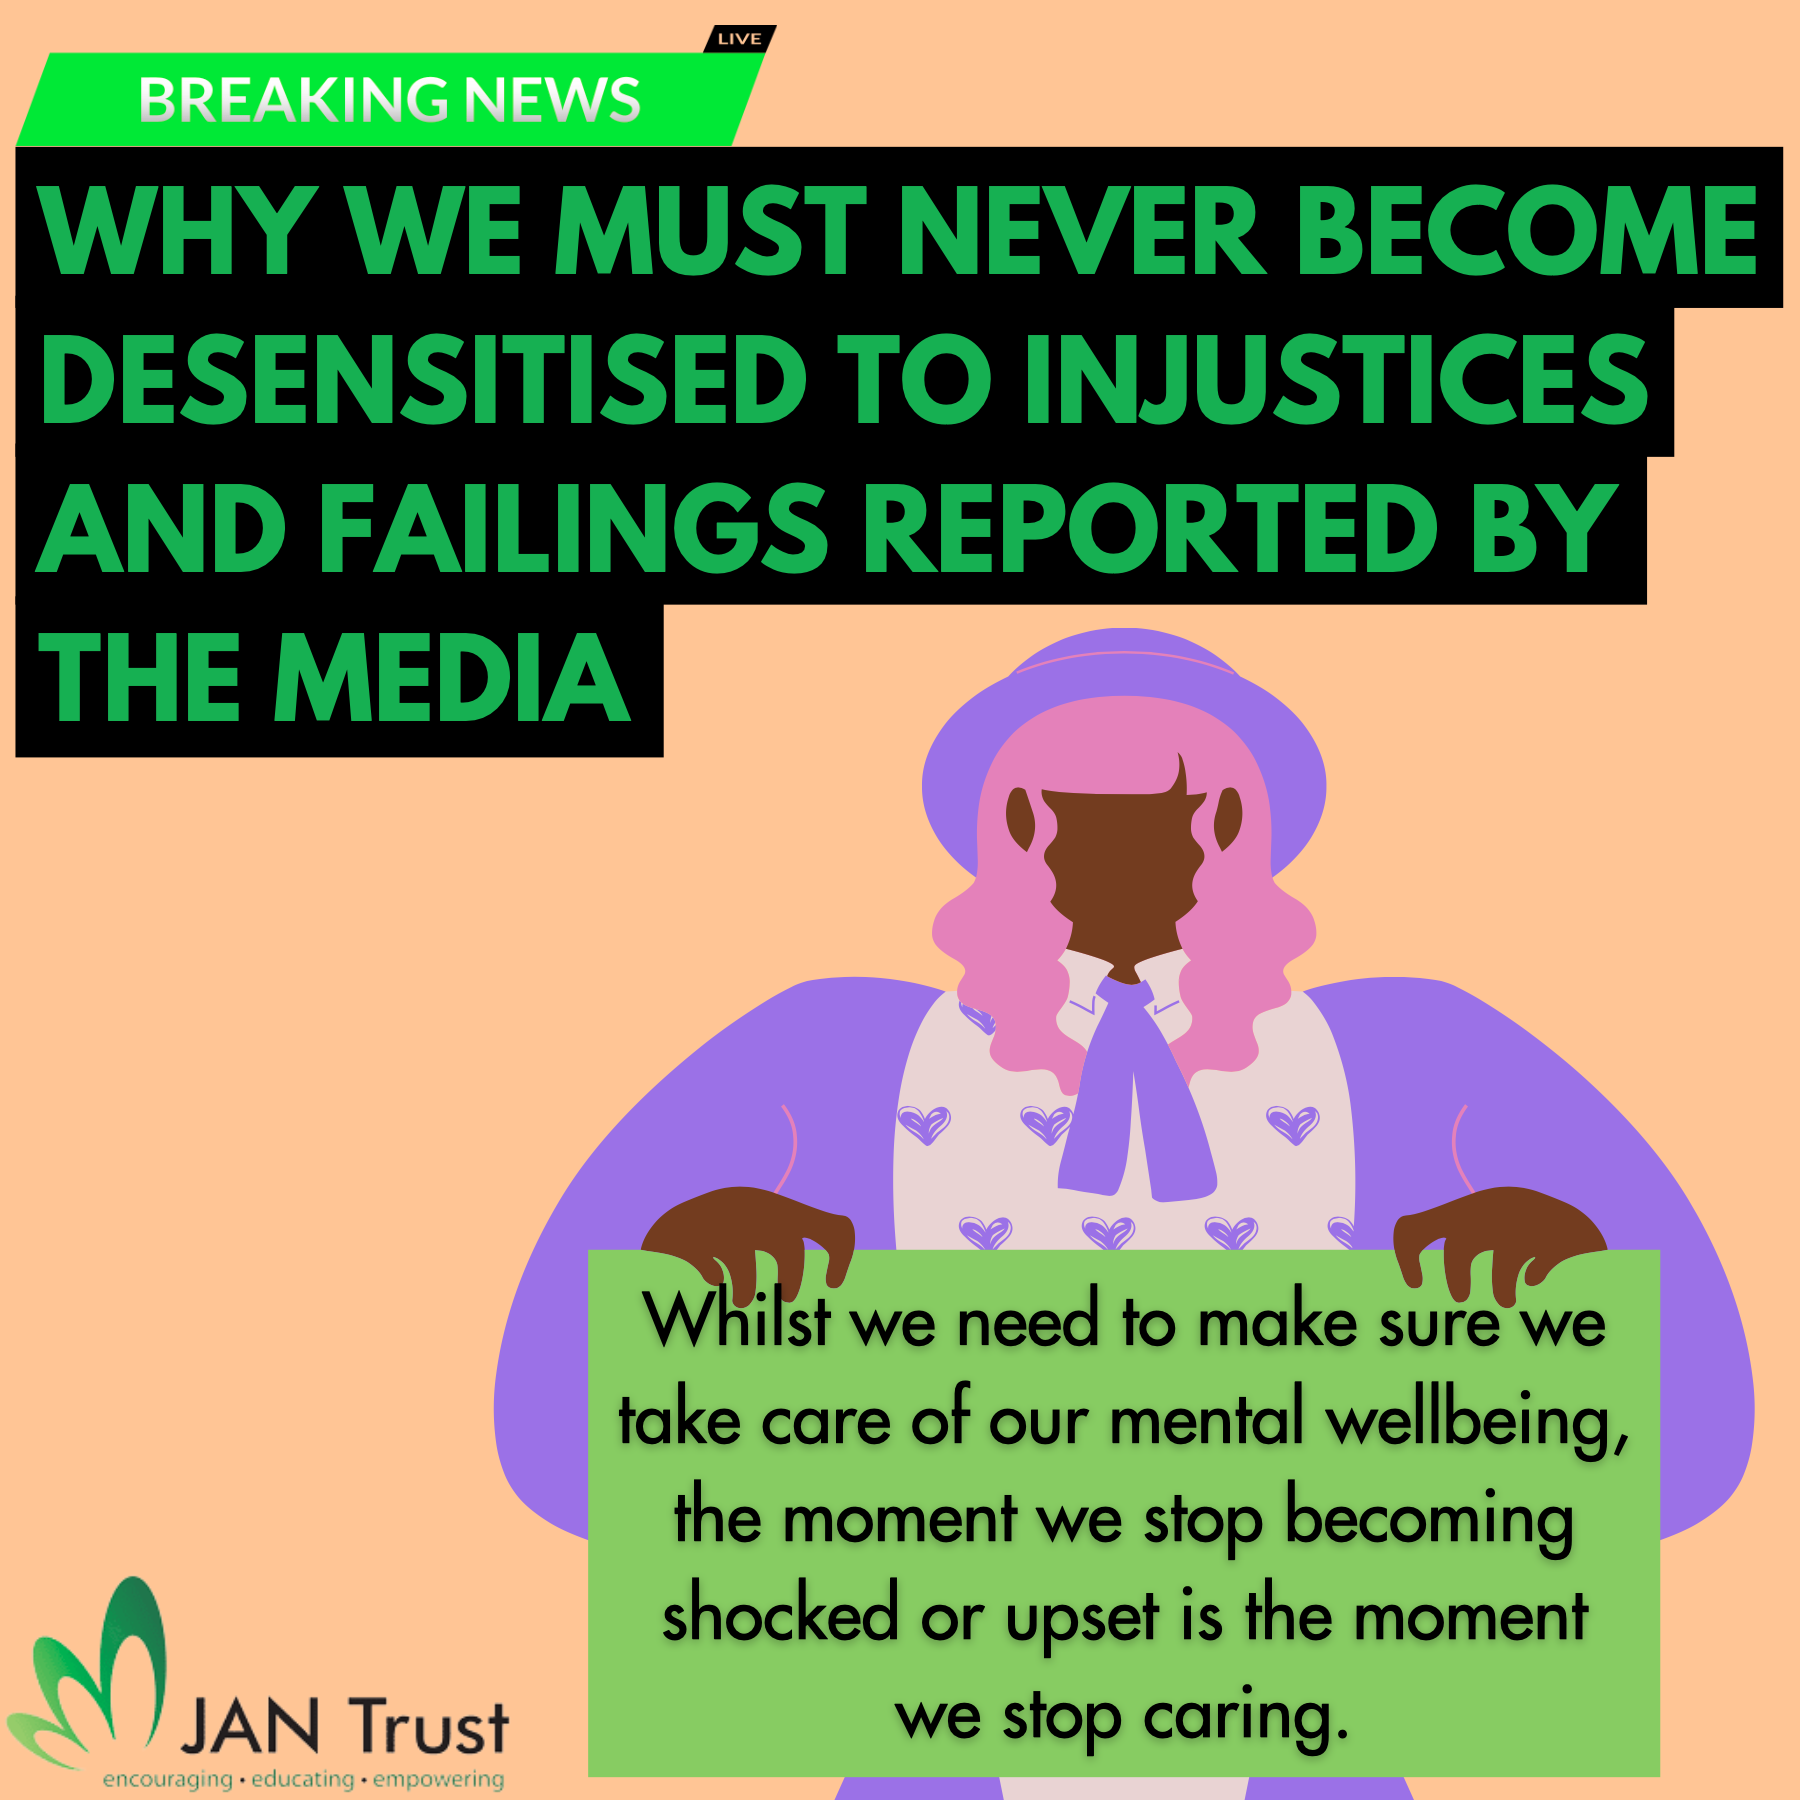 Why we must never become desensitised to injustices and failings reported by the media